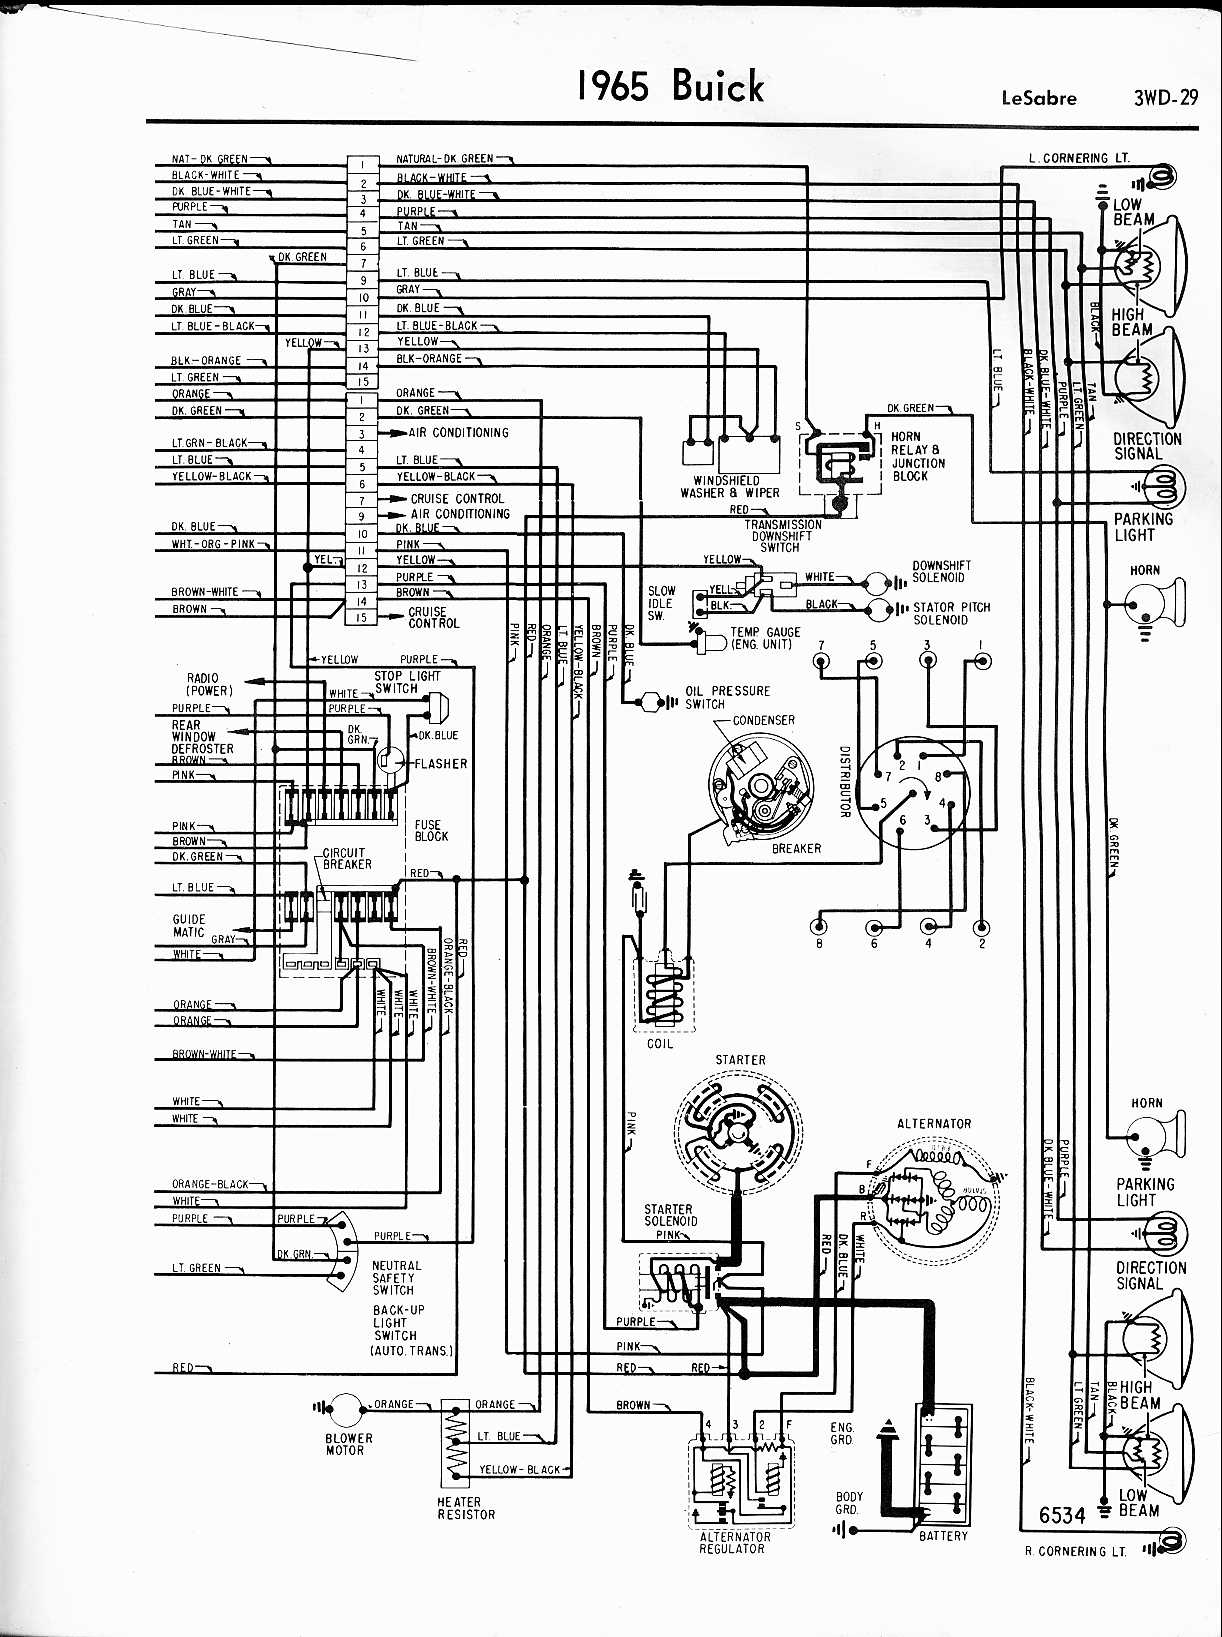 Buick Alternator Wiring Diagram Archive Of Automotive 1990 Vanagon Diagrams 1957 1965 Rh Oldcarmanualproject Com